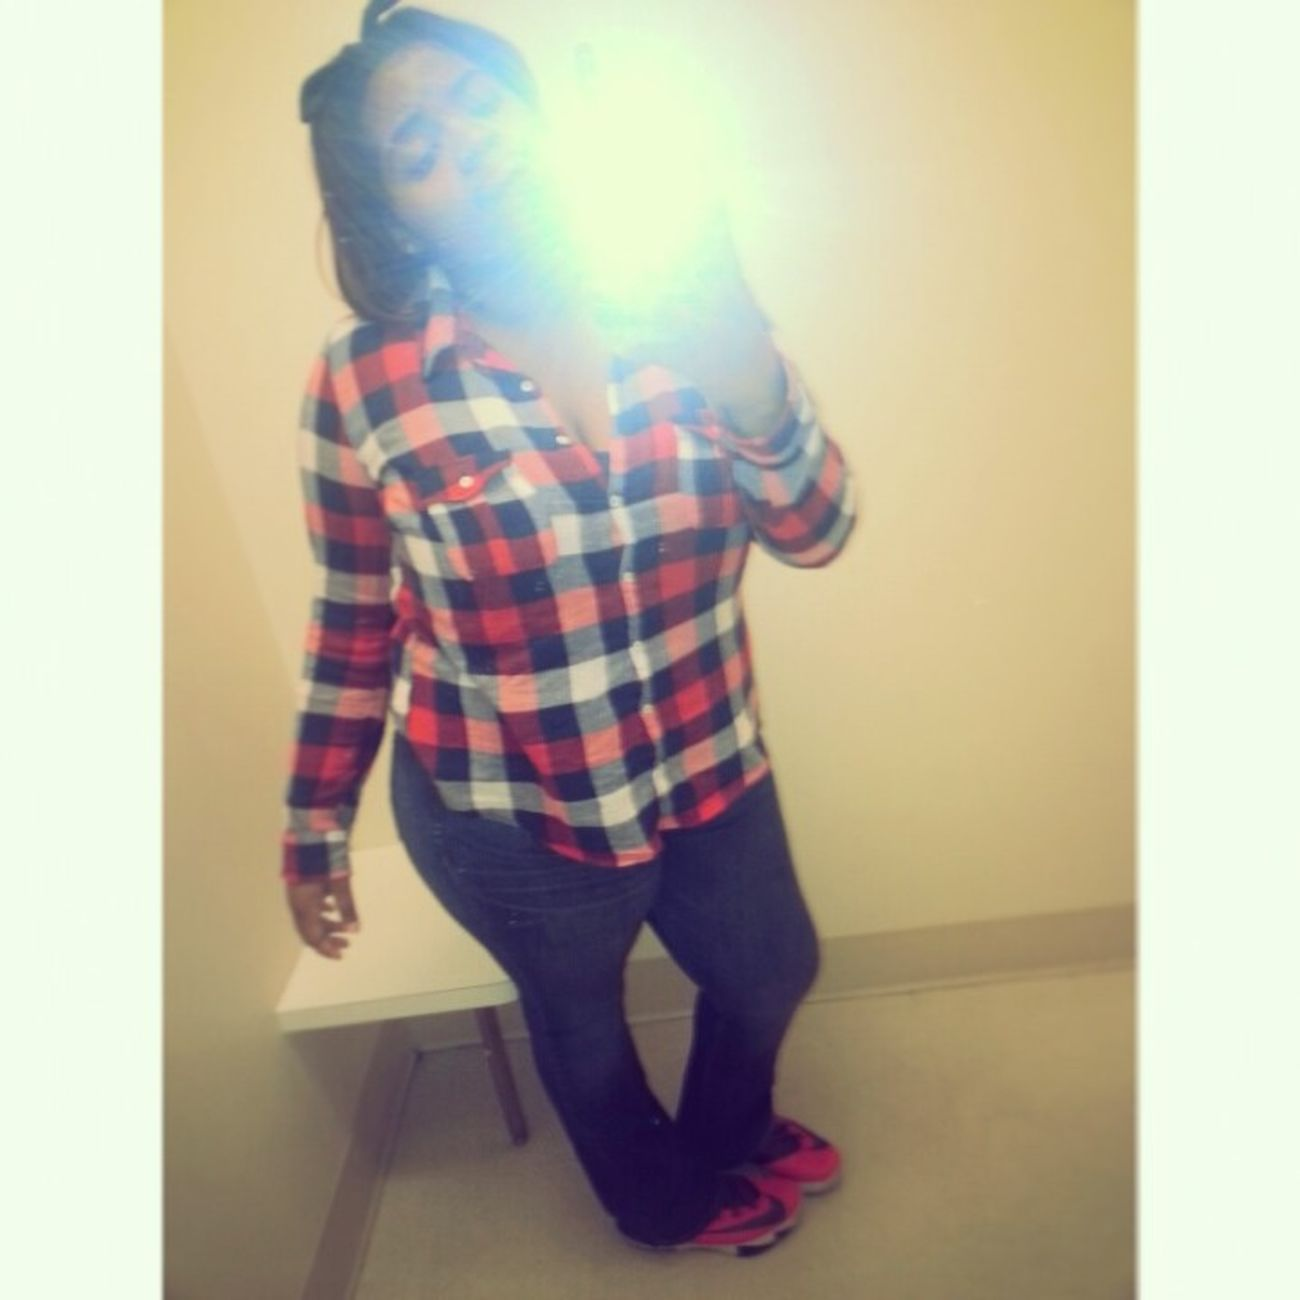 - Awe Update Kik Me Cute Or Whateverr Chilling Or Whatever.